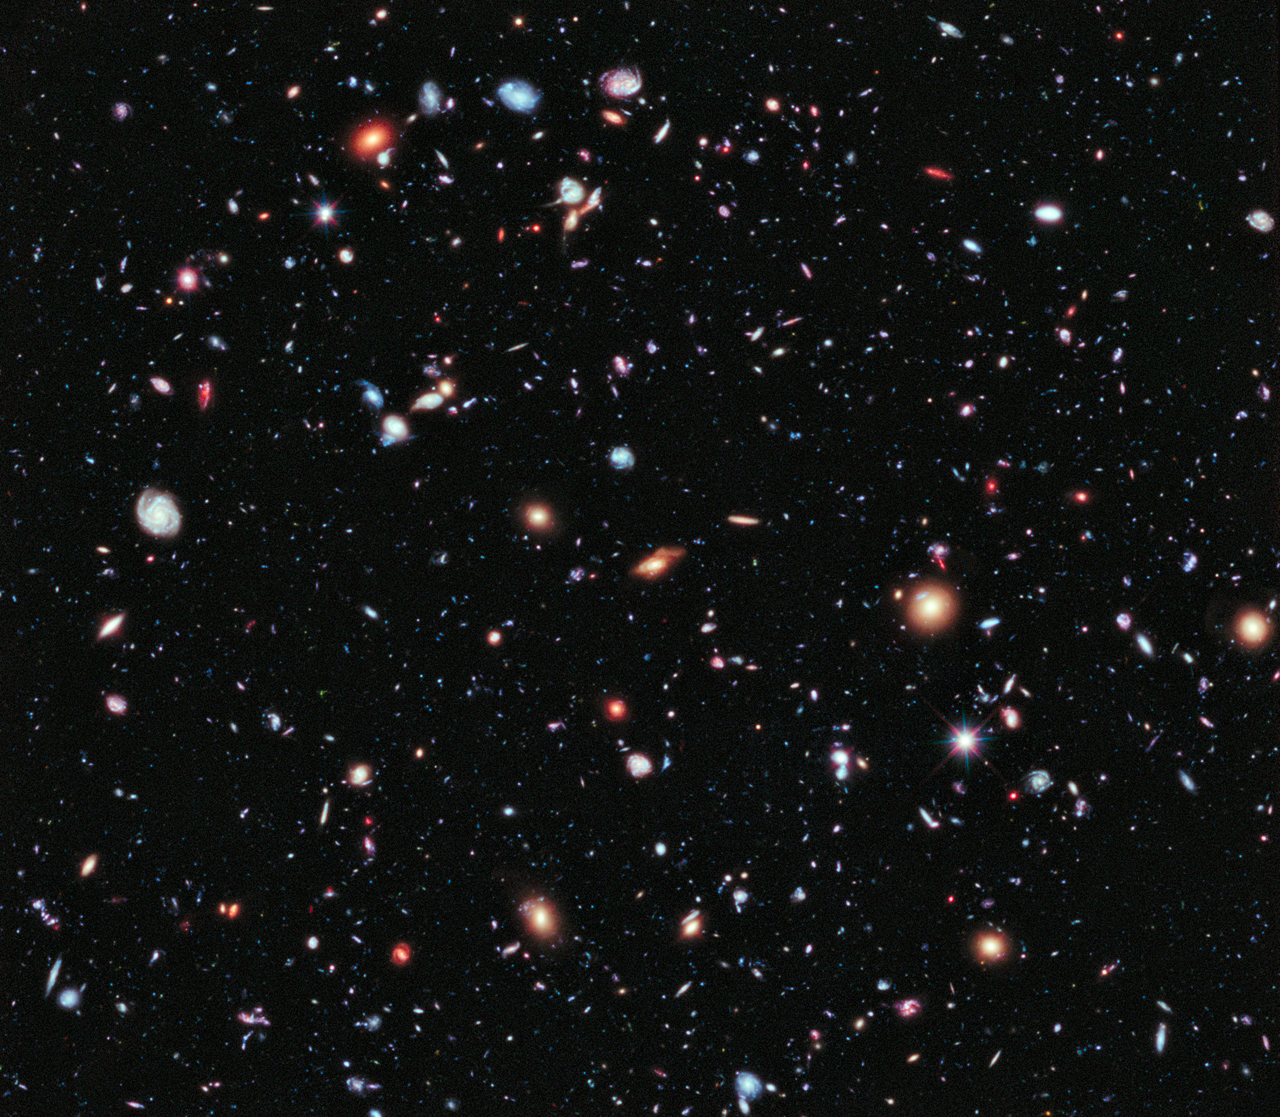 http://hubblesite.org/newscenter/archive/releases/2012/37/image/a/format/xlarge_web/